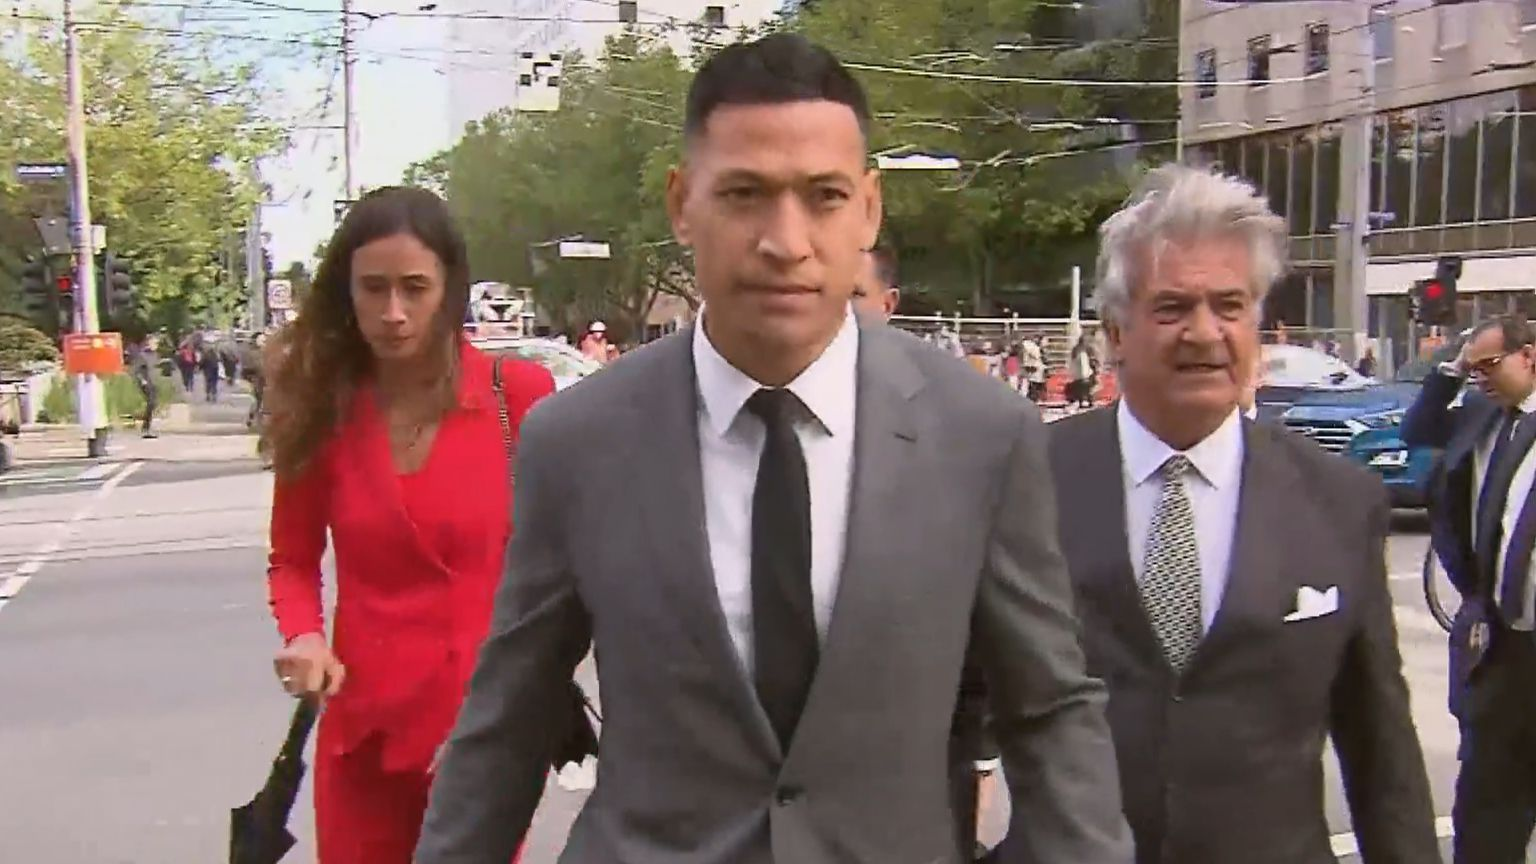 Israel Folau to agree to social media conditions as part of $1 million Dragons deal